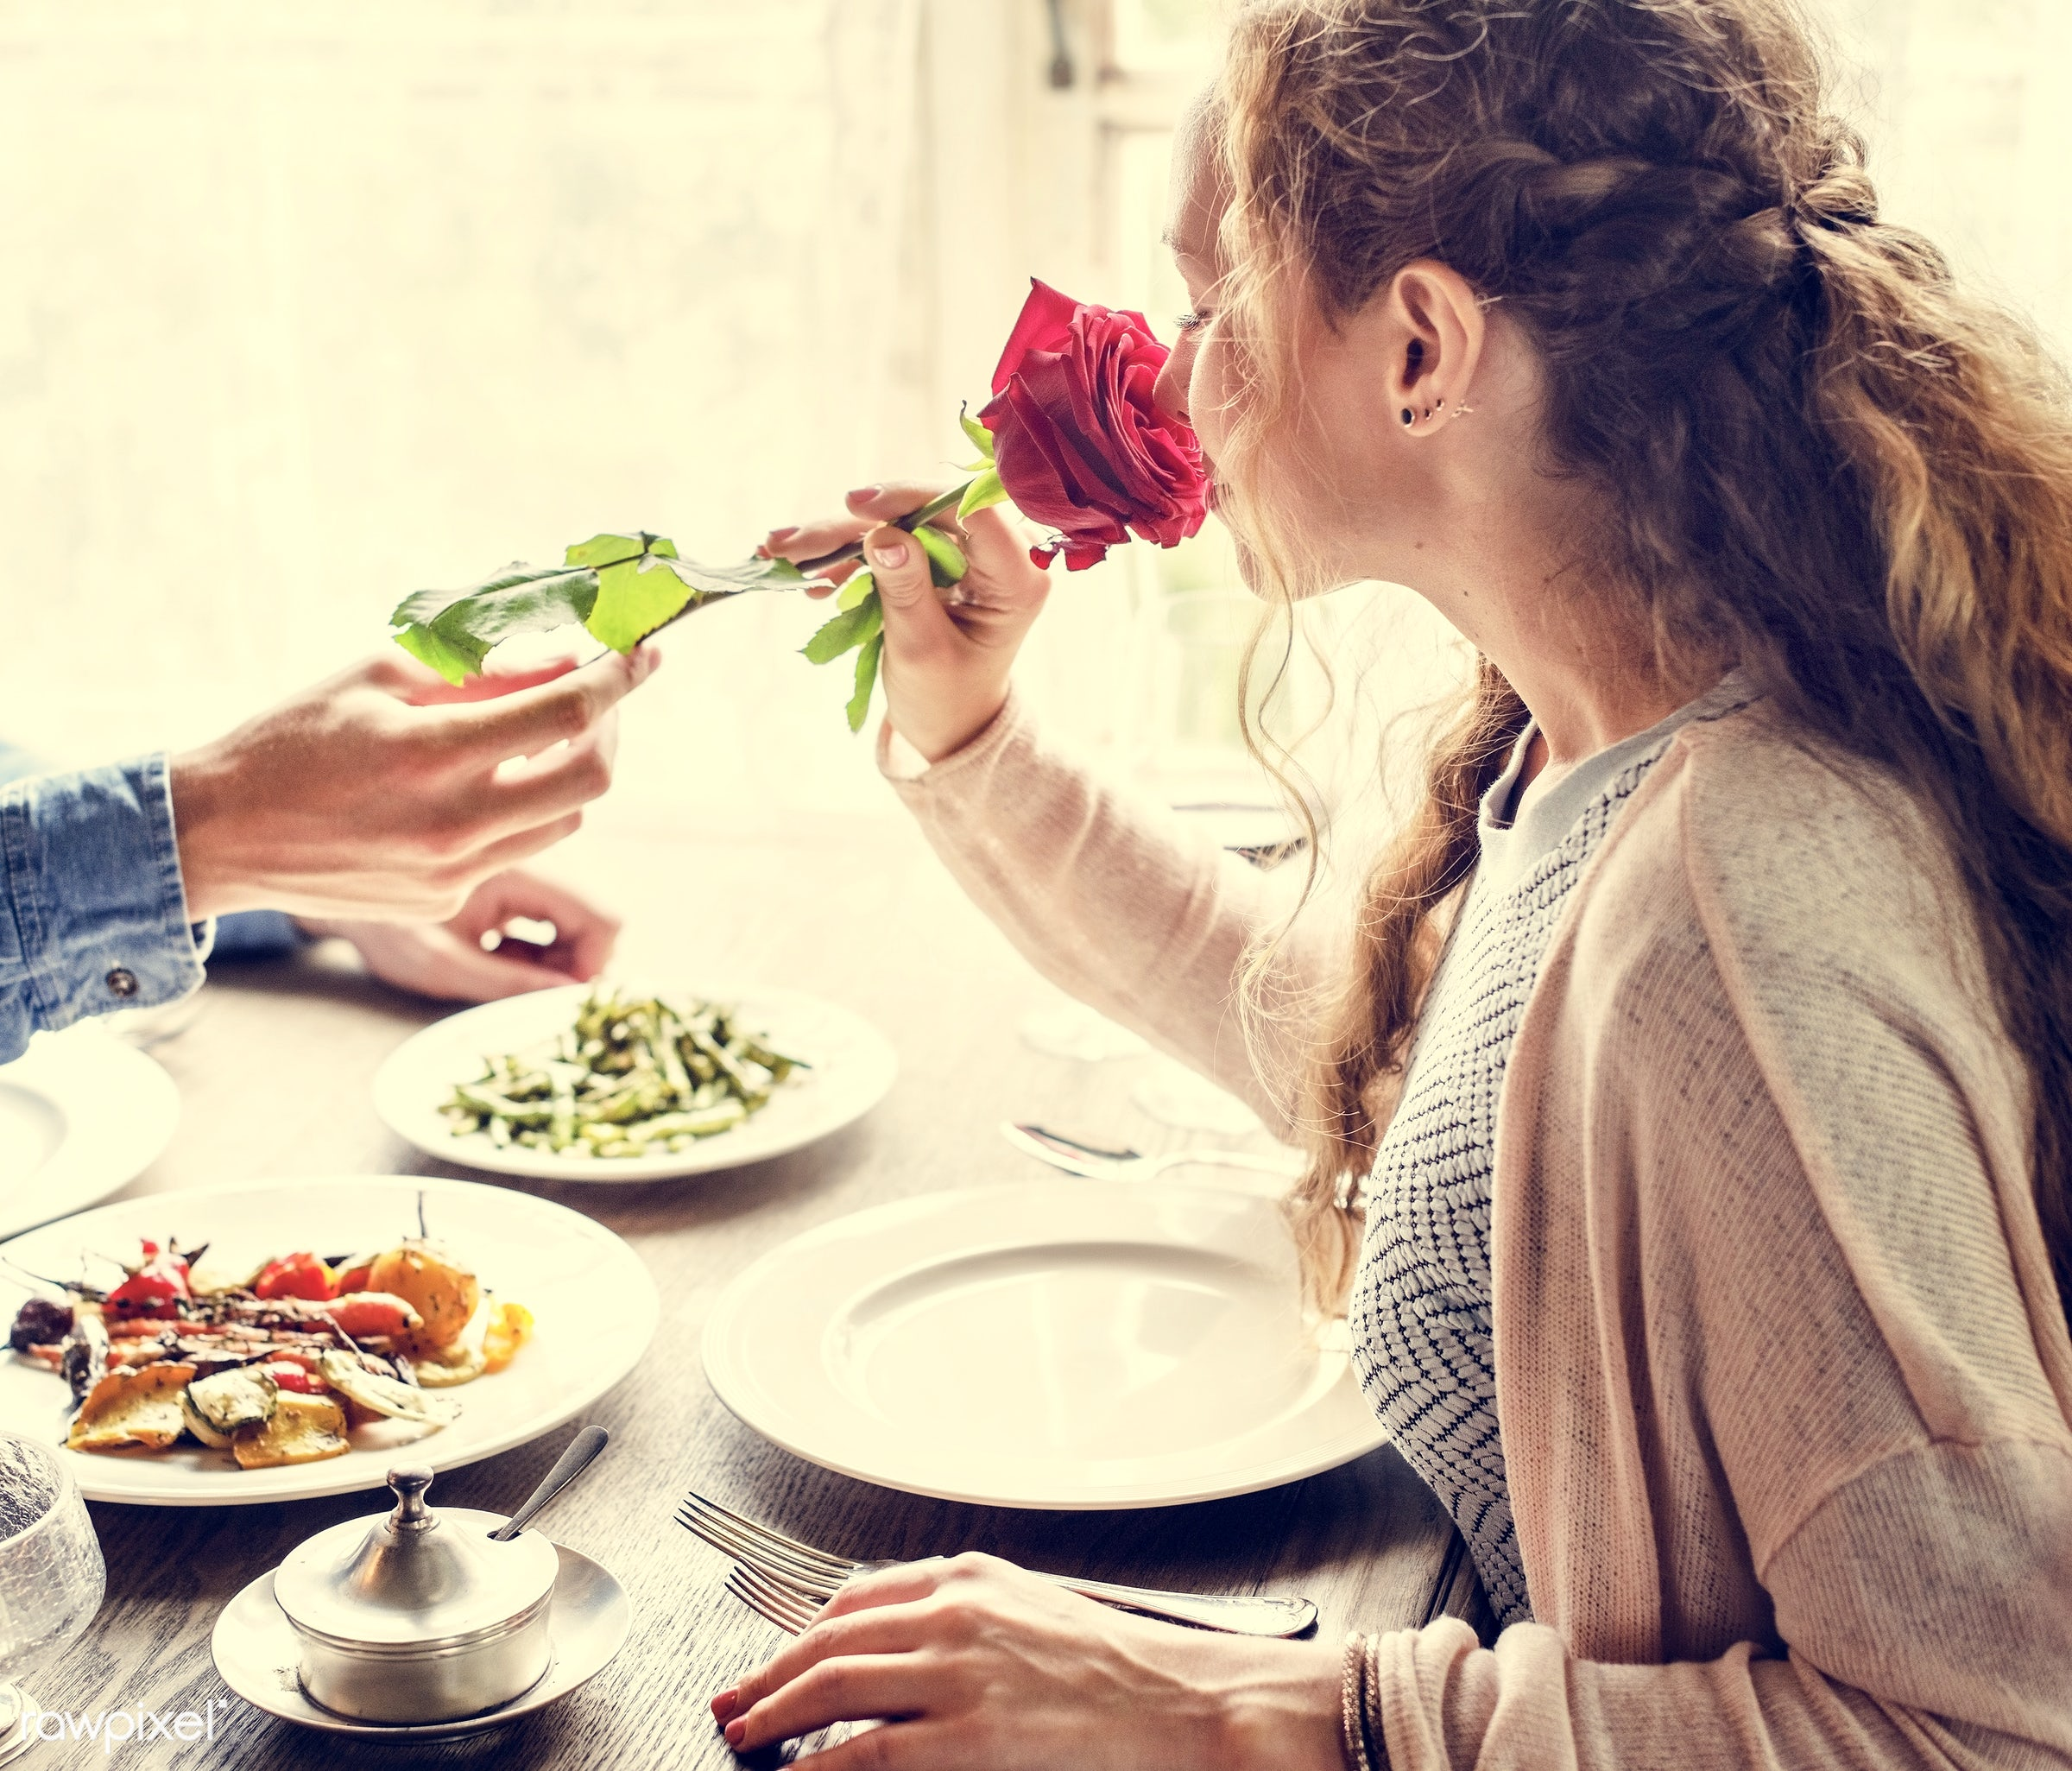 expression, person, people, together, love, gather, woman, lunch, cheerful, flower, hold, happiness, table, dinner, present...